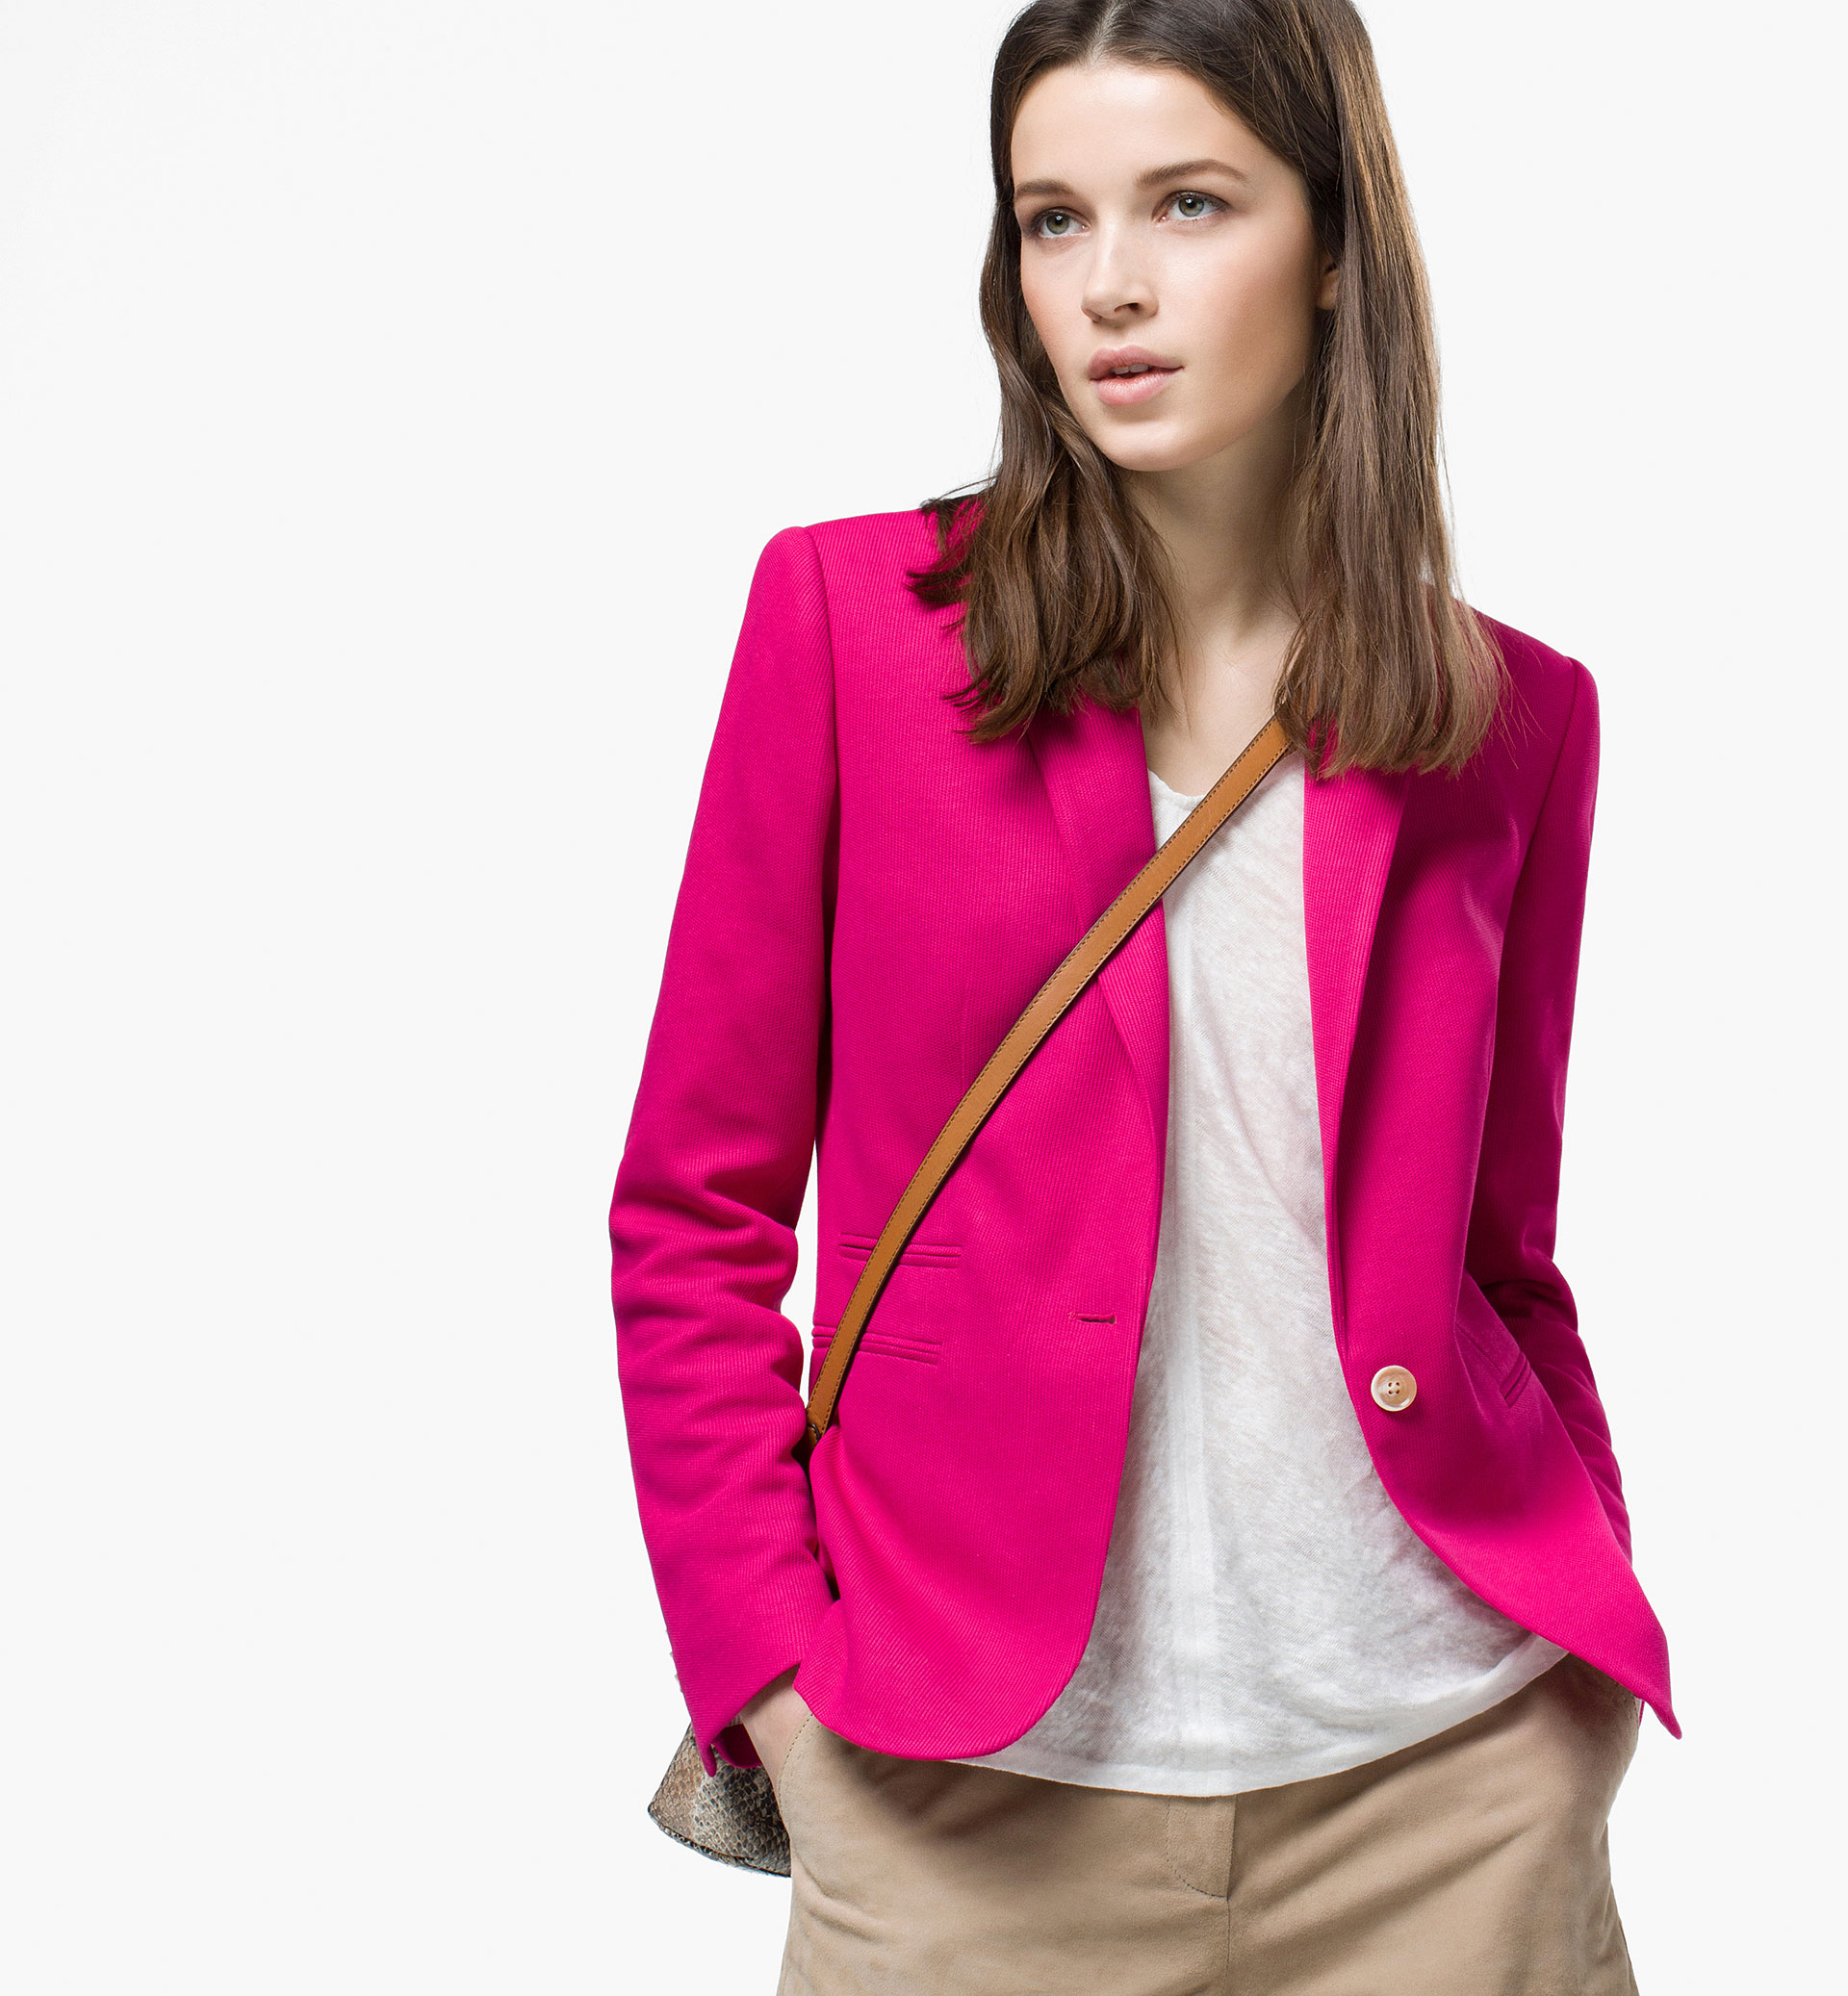 Veste femme collection printemps 2015